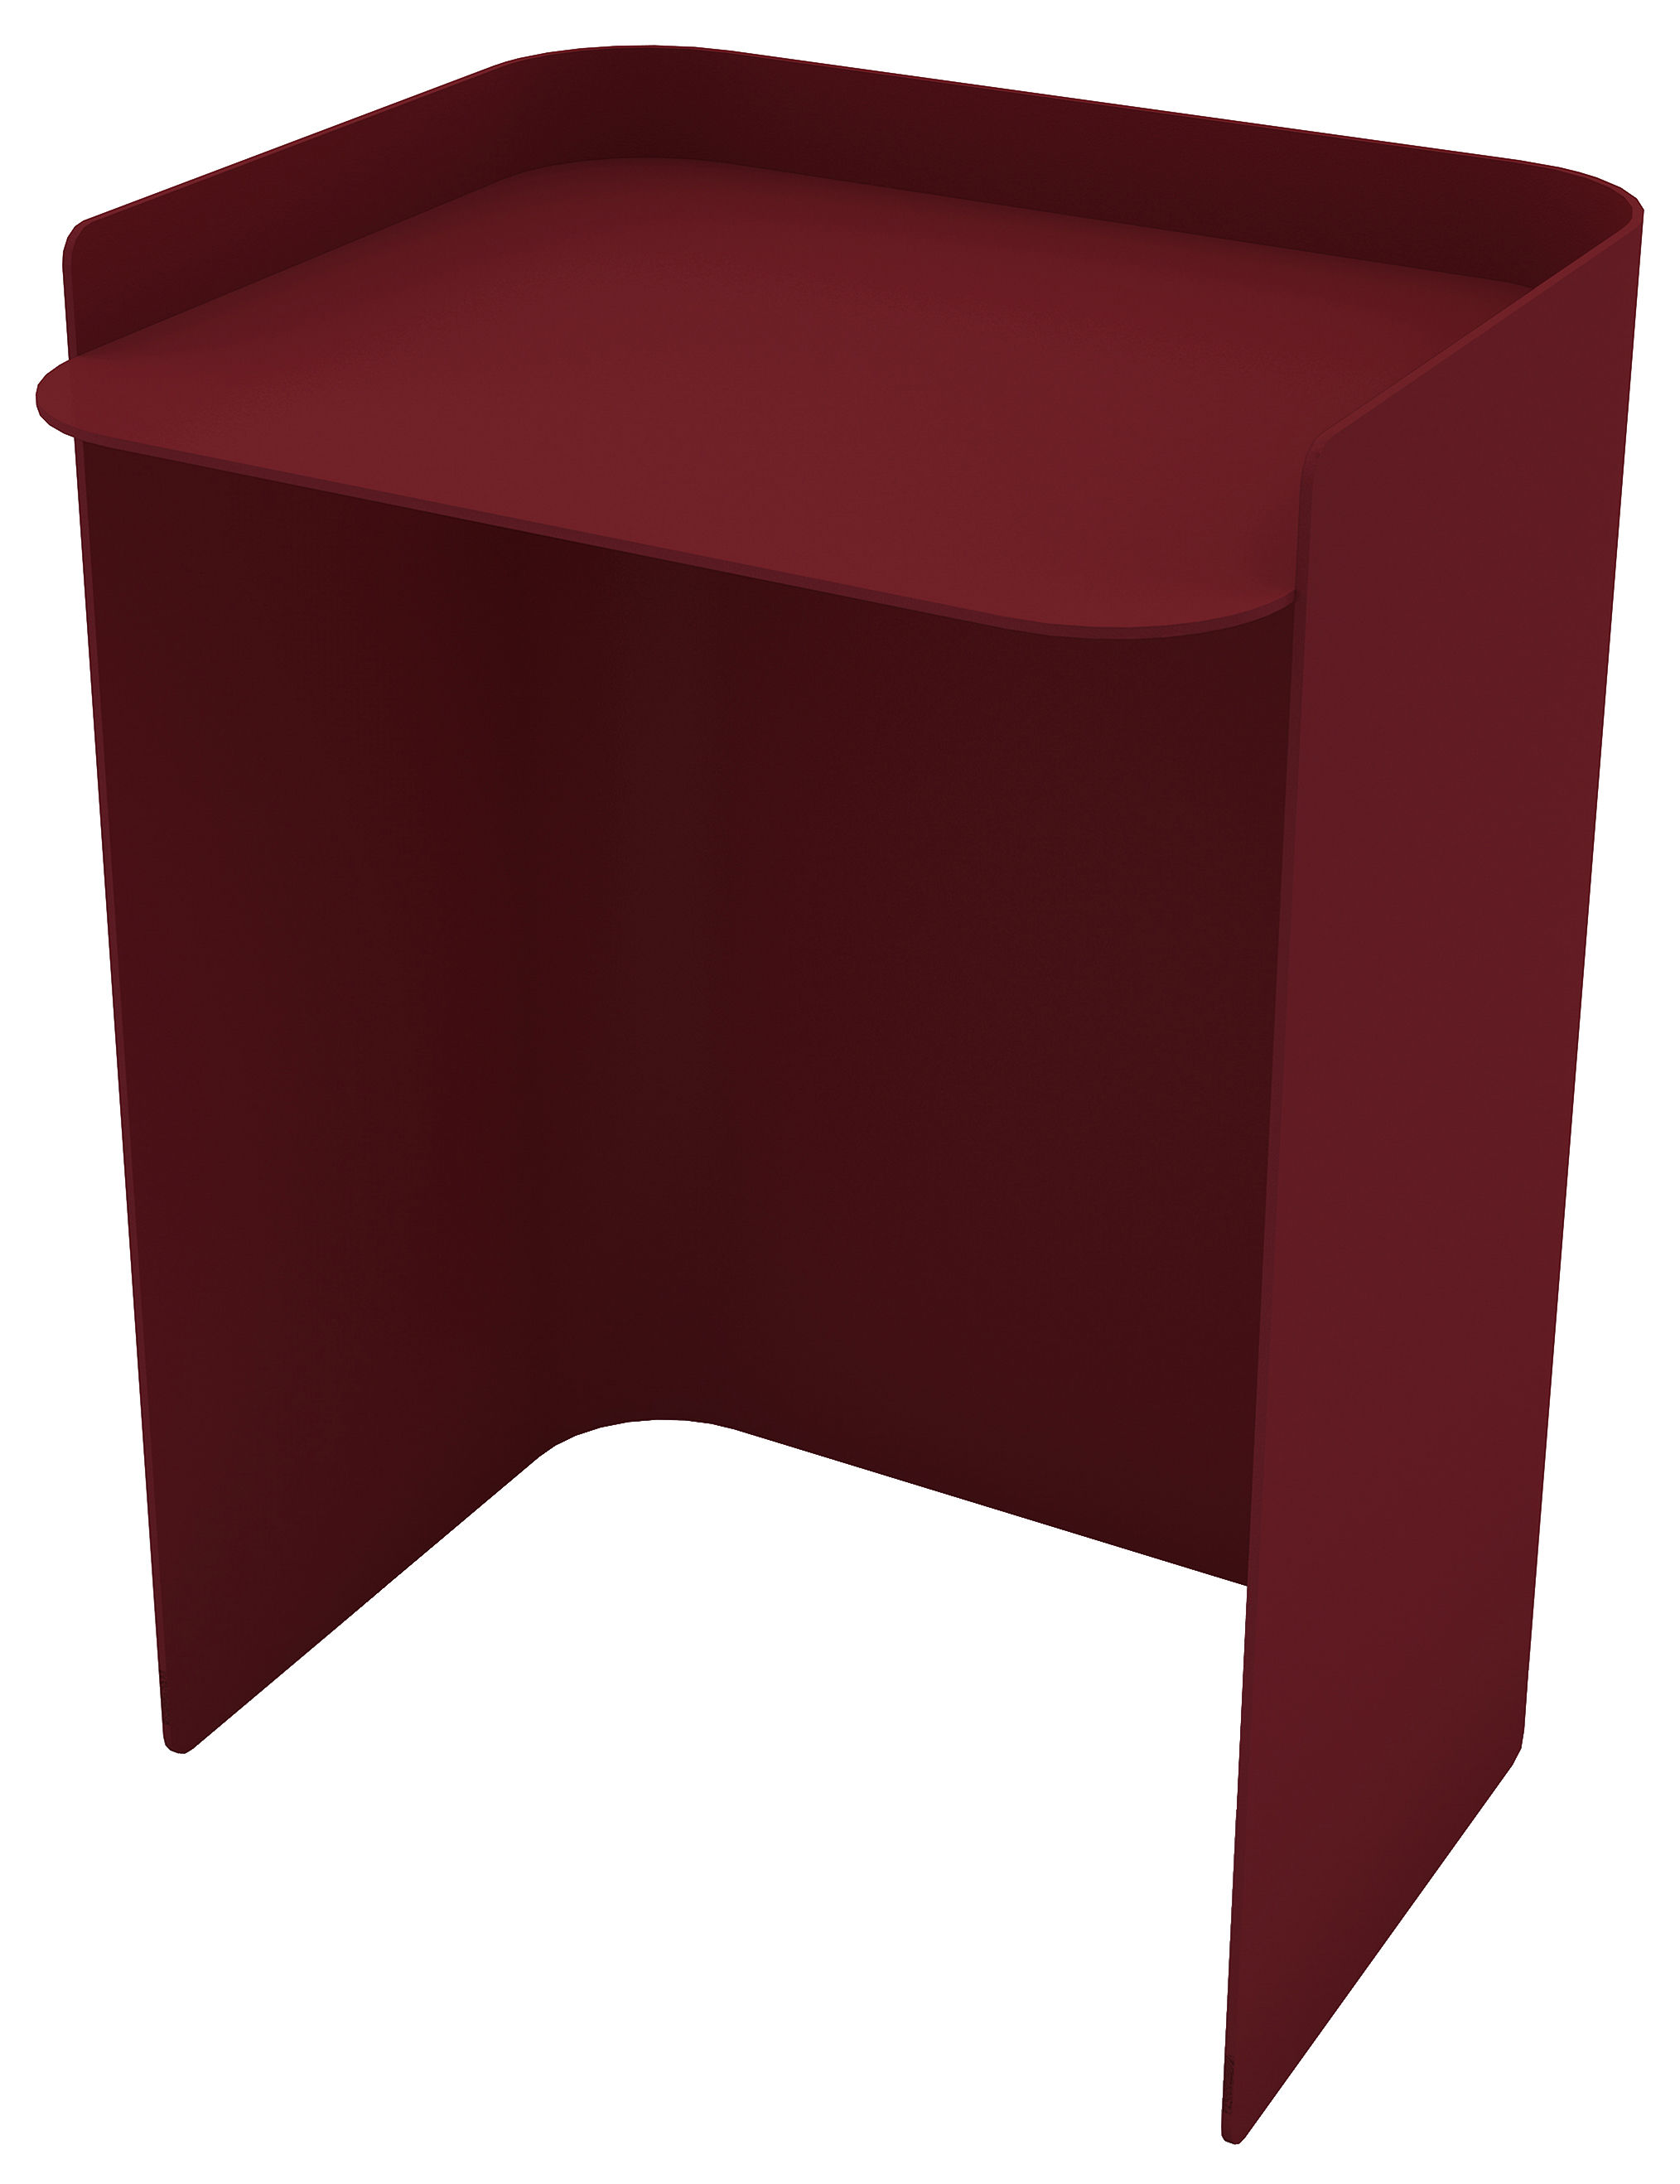 table d 39 appoint flor large h 49 cm rouge pourpre mati re grise. Black Bedroom Furniture Sets. Home Design Ideas